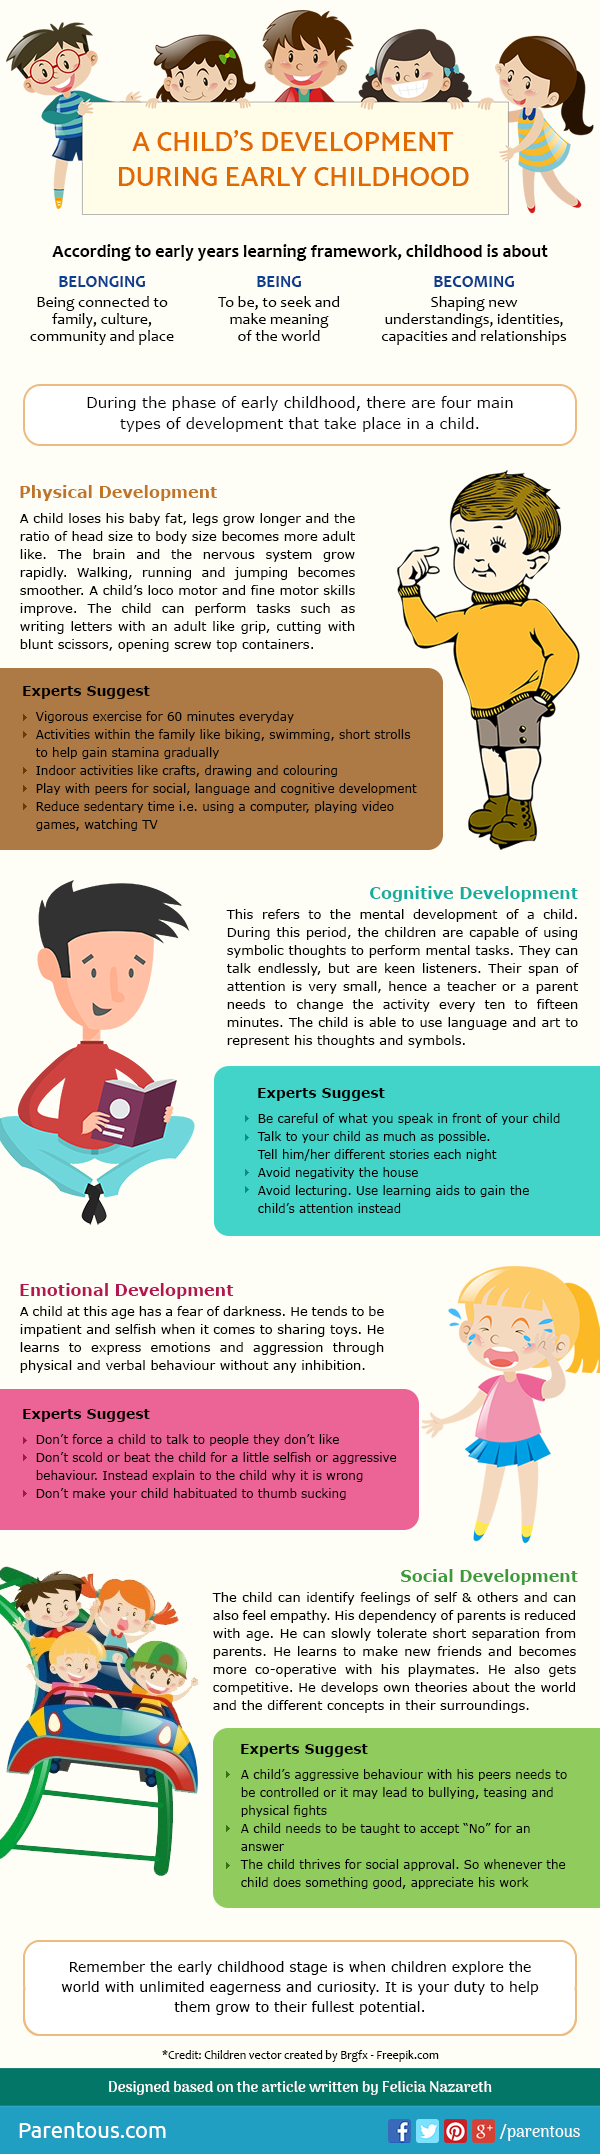 Development During Early Childhood - Belonging, Being & Becoming.